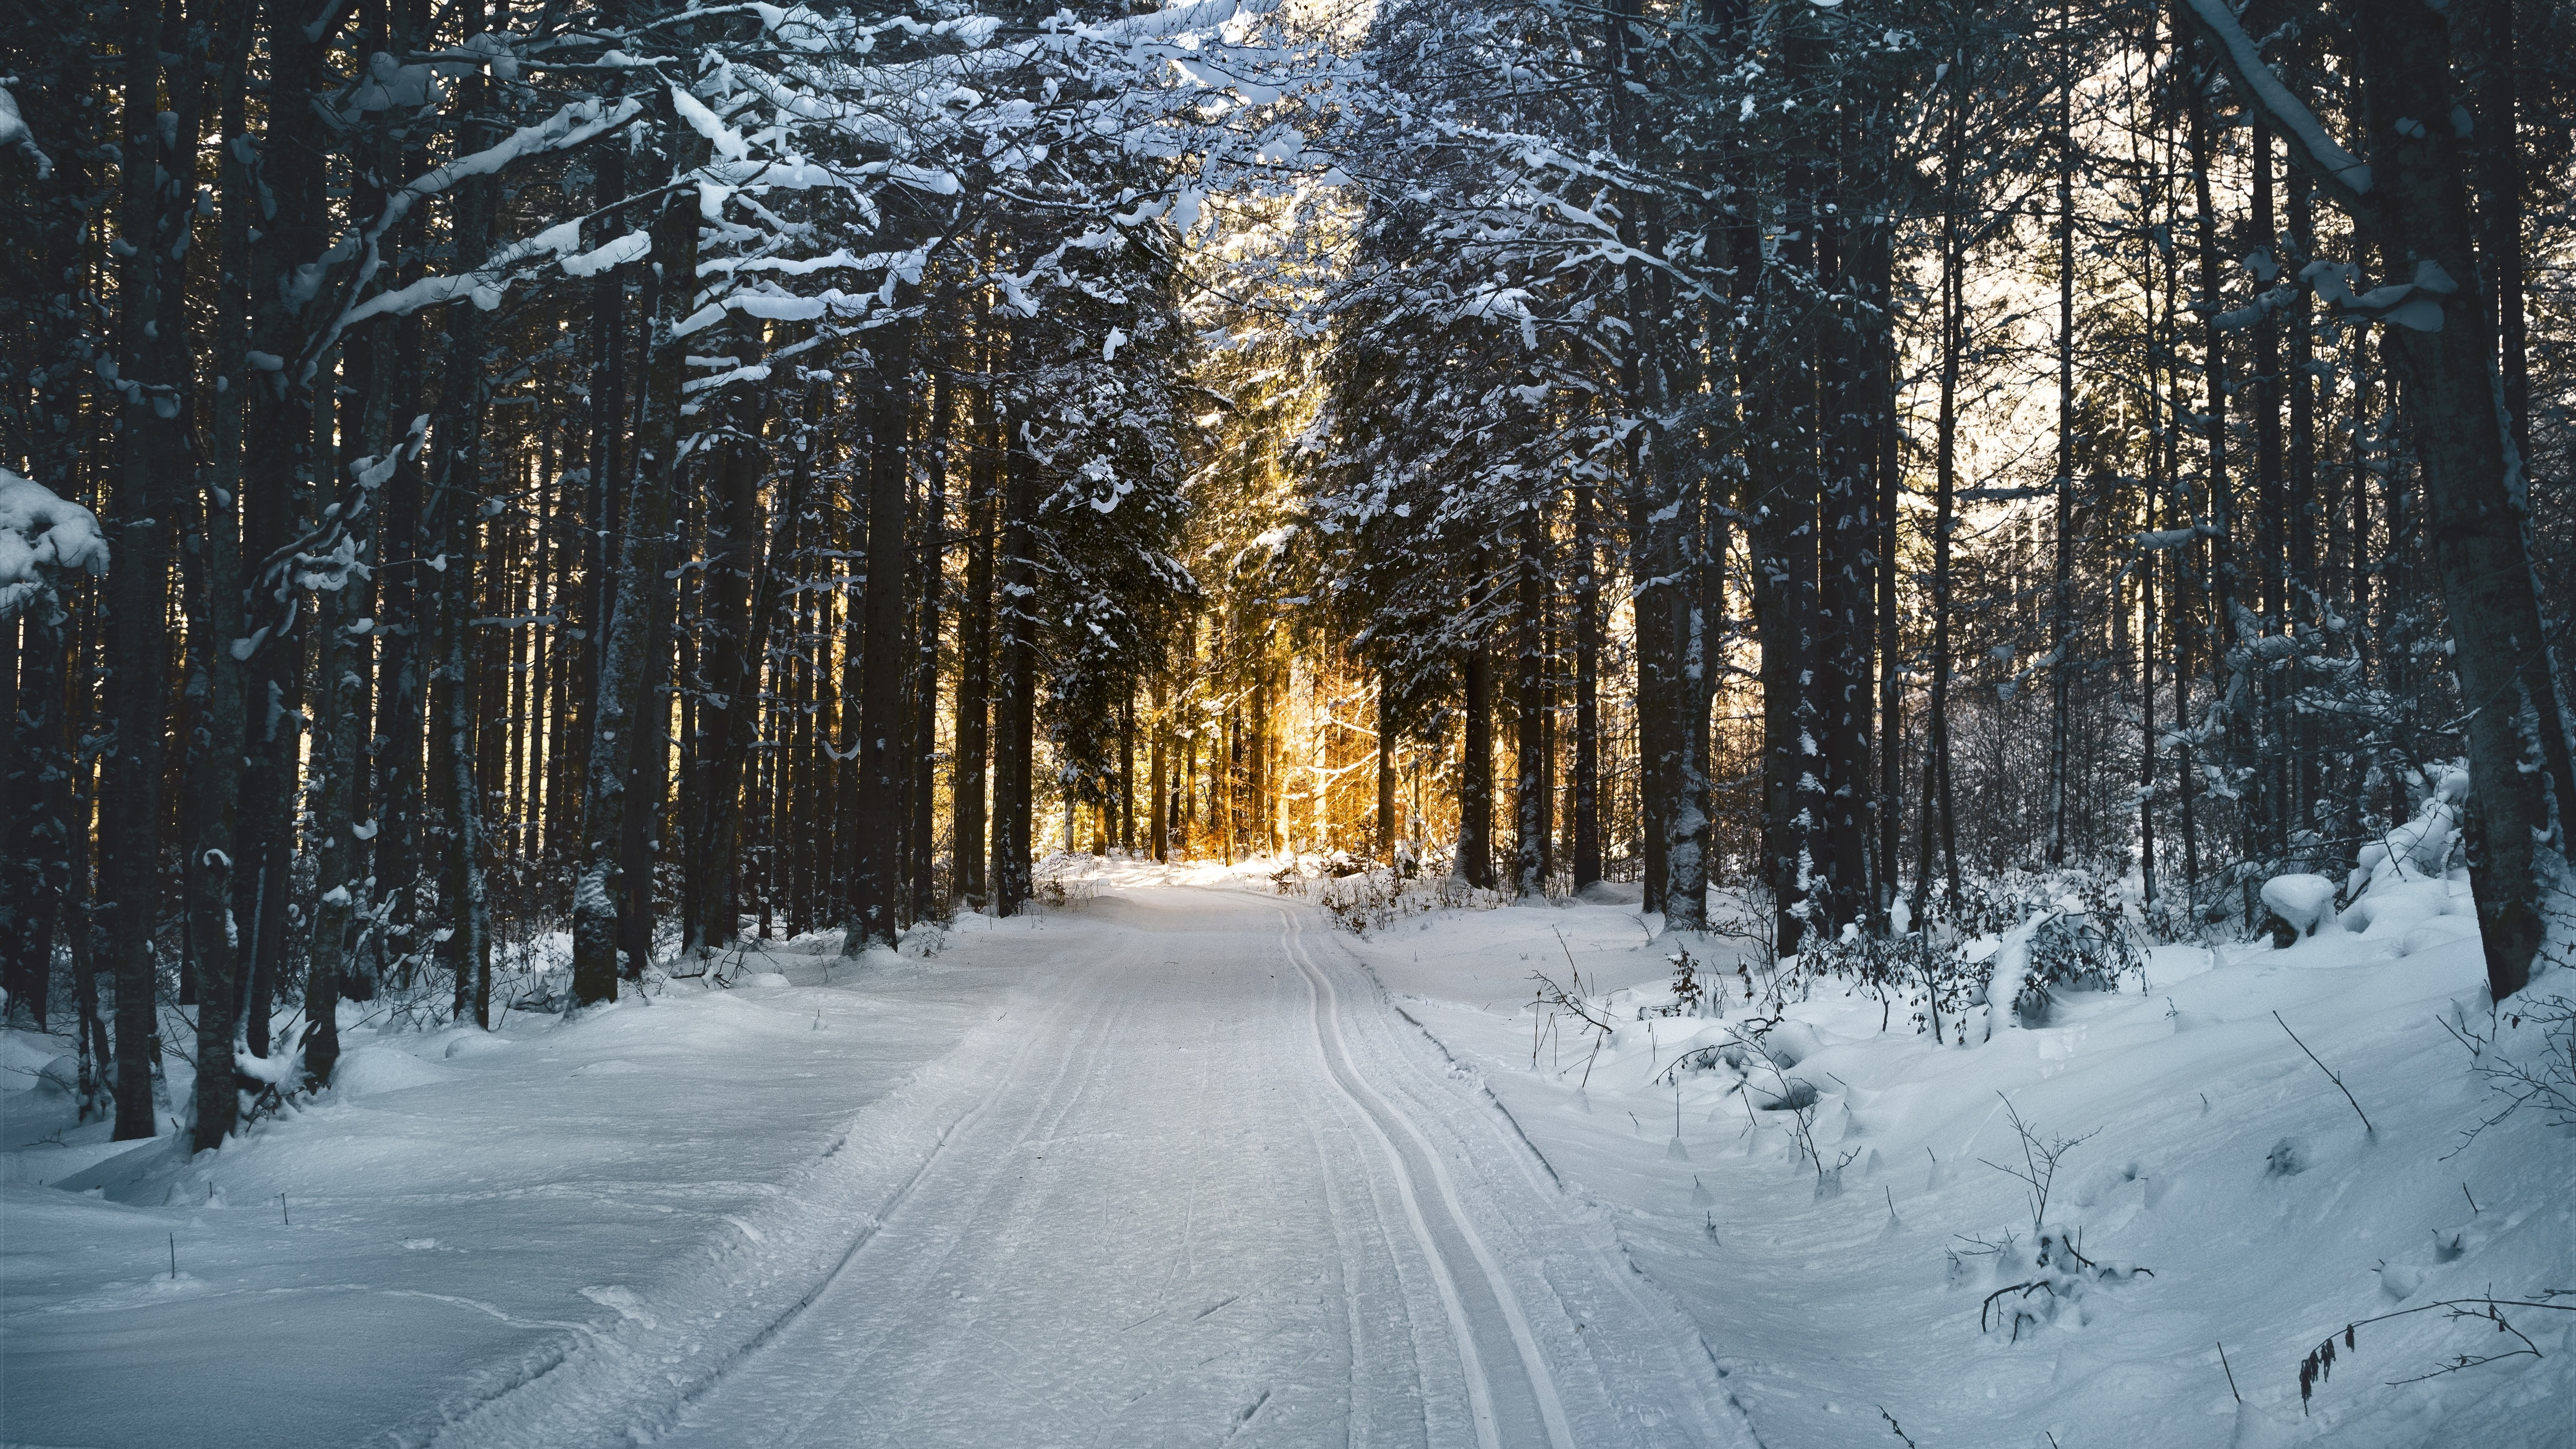 winter_trees_path_snow_sunshine_5120x2880.jpg